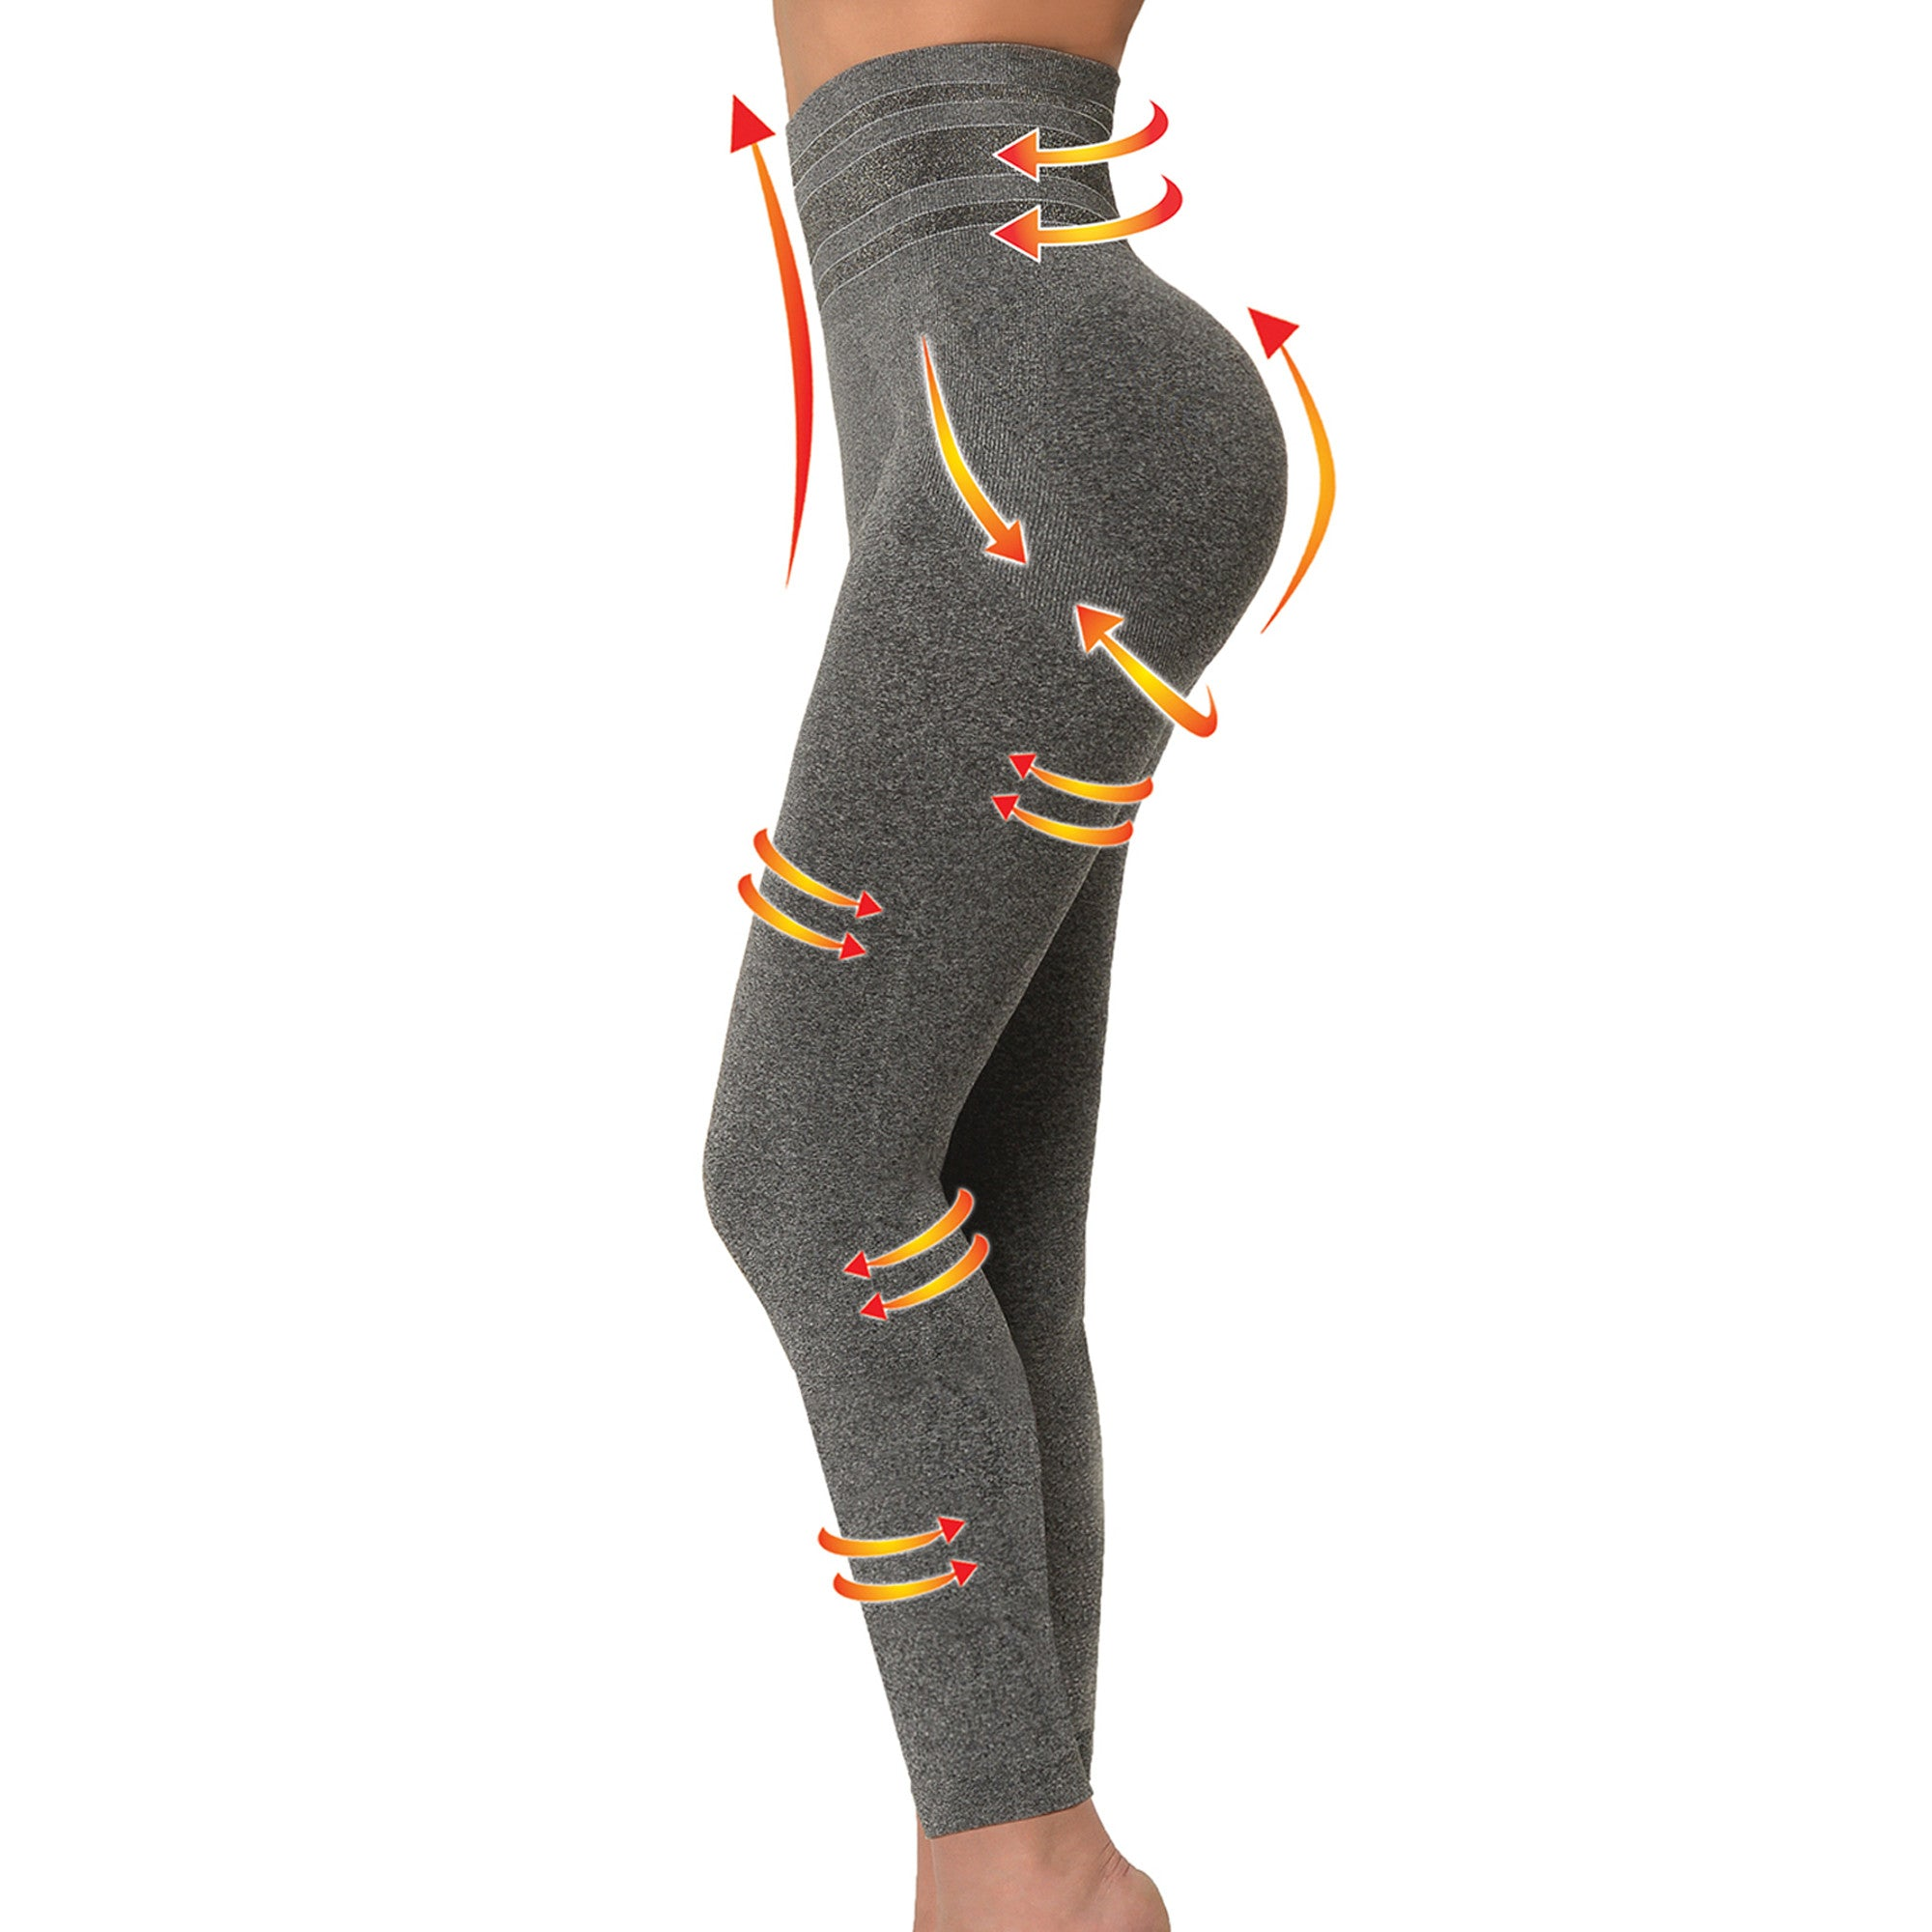 SANKOM yoga pants with butt lift and back support